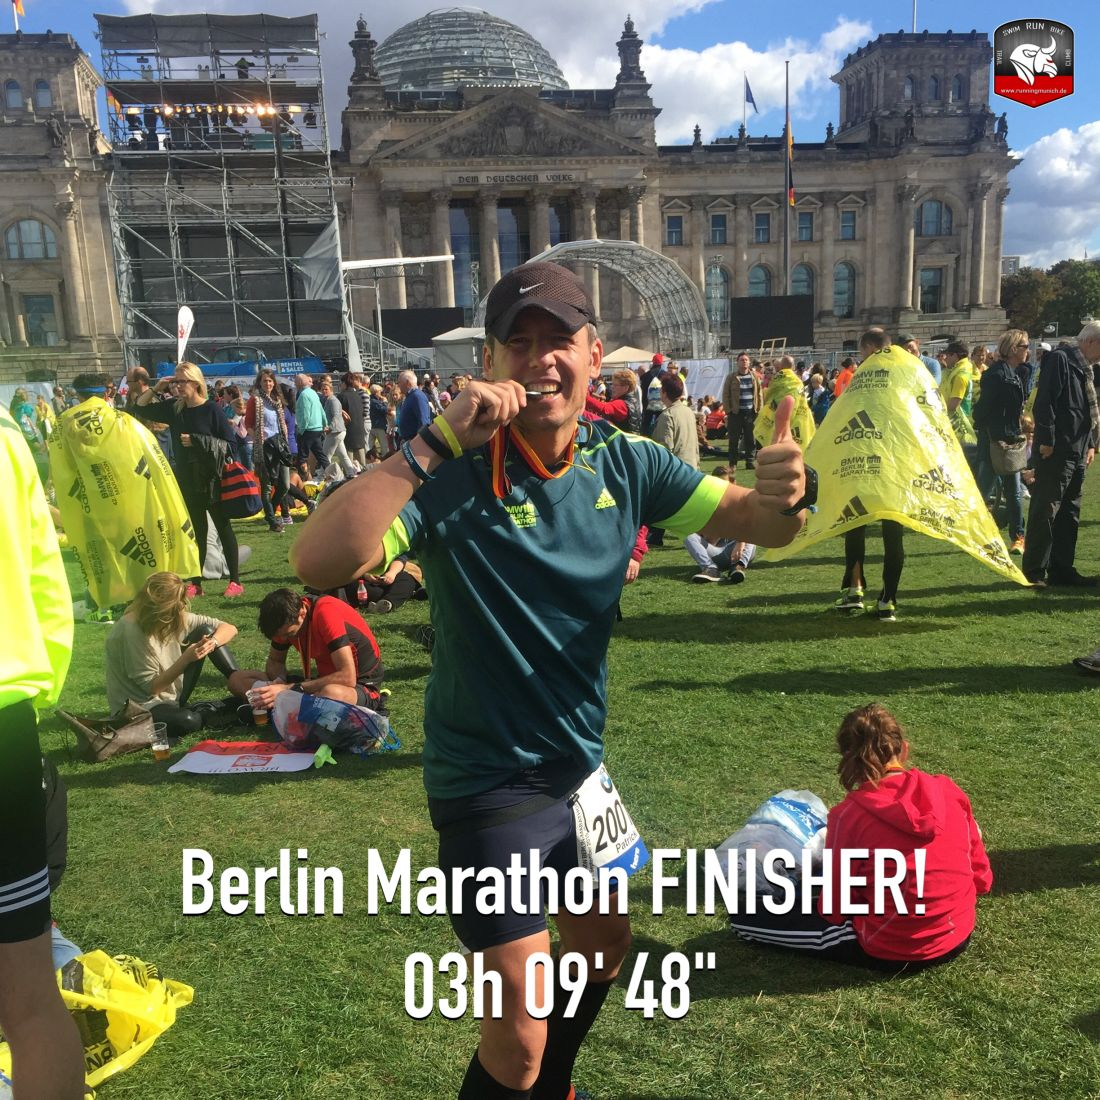 Berlin Marathon 2015 Finisher